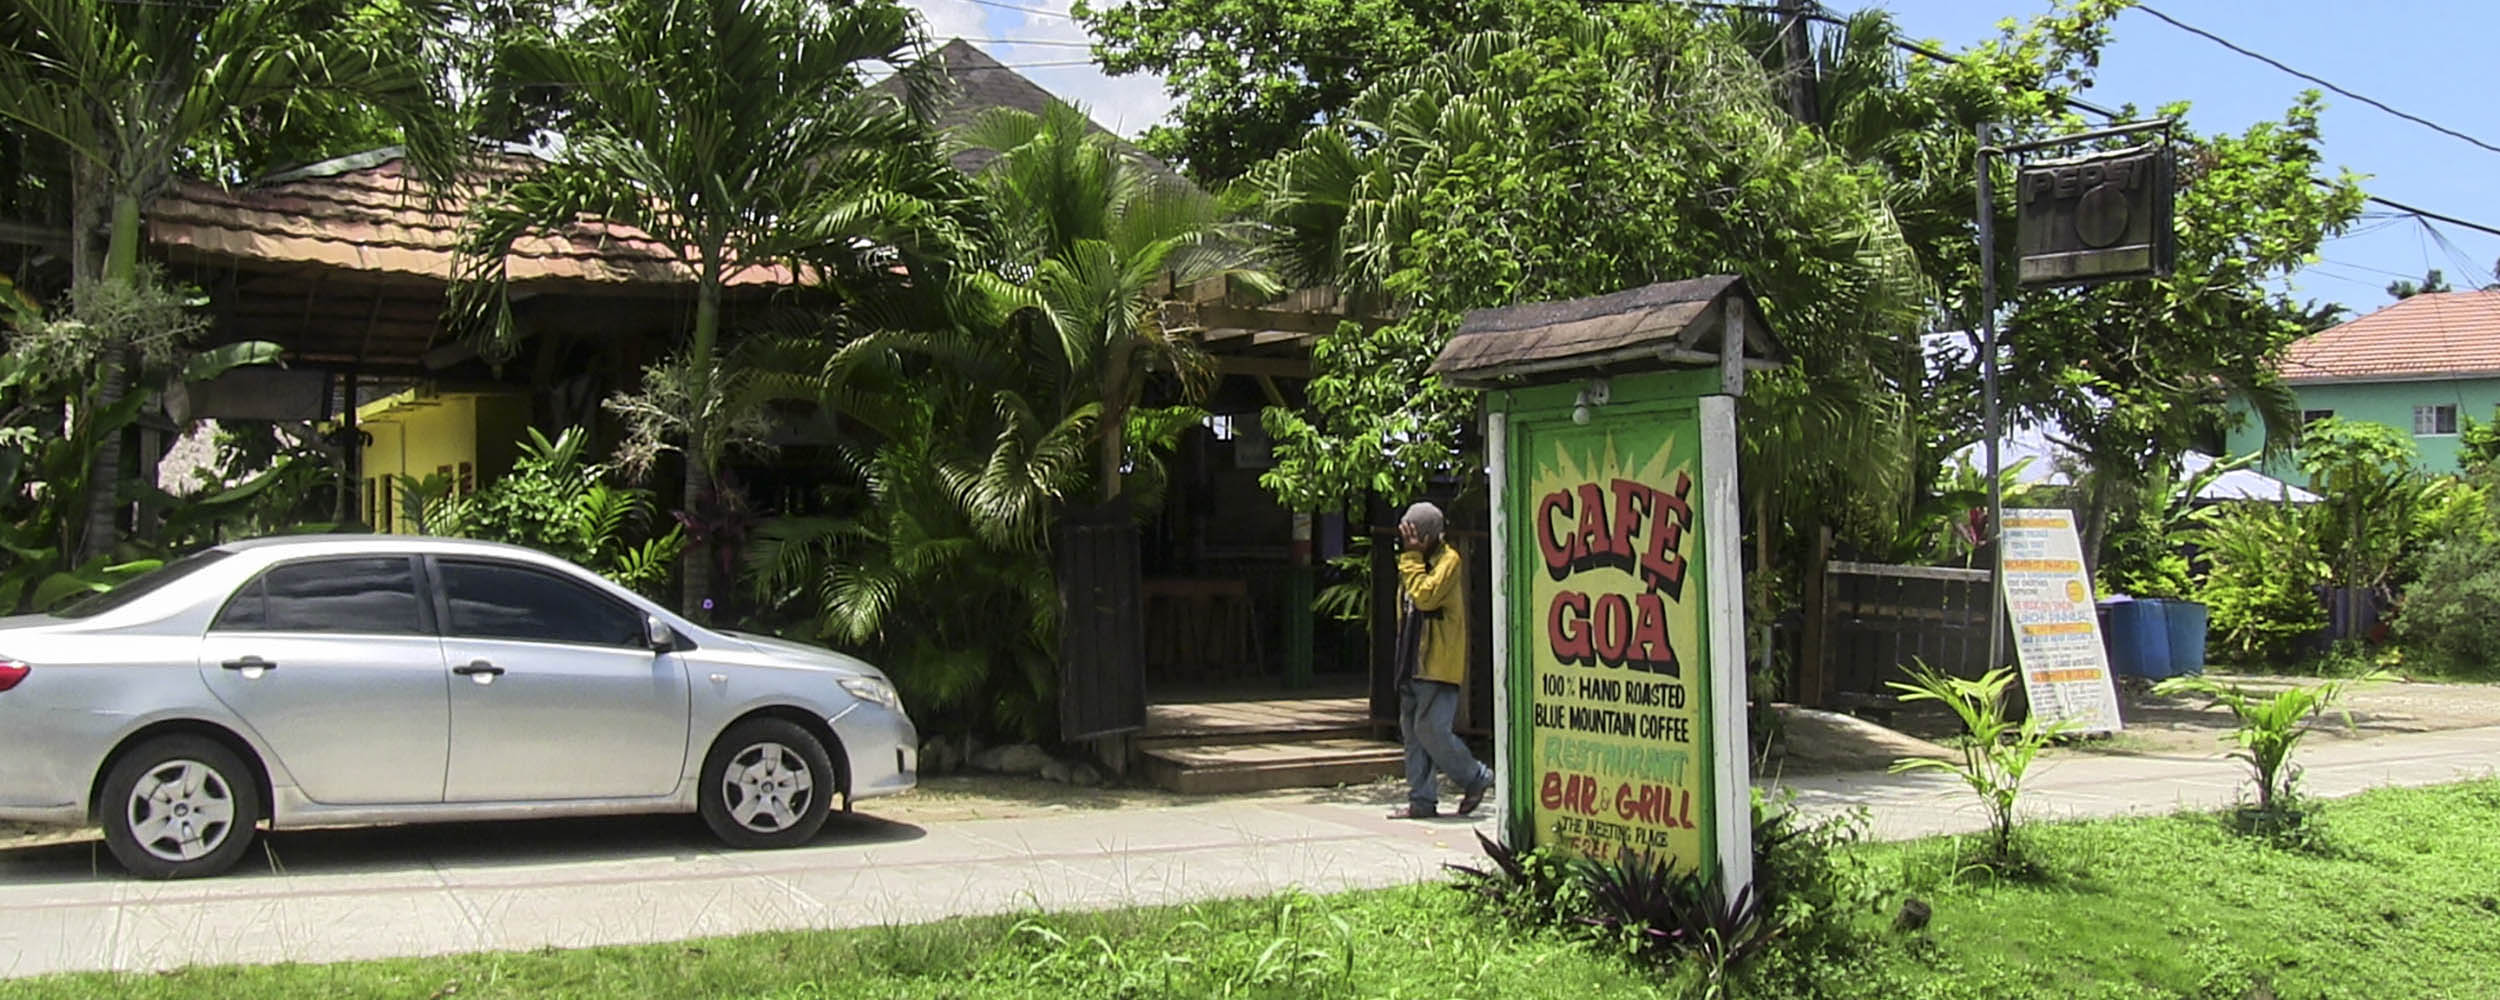 Cafe GOA, Norman Manley Boulevard, Negril Jamaica